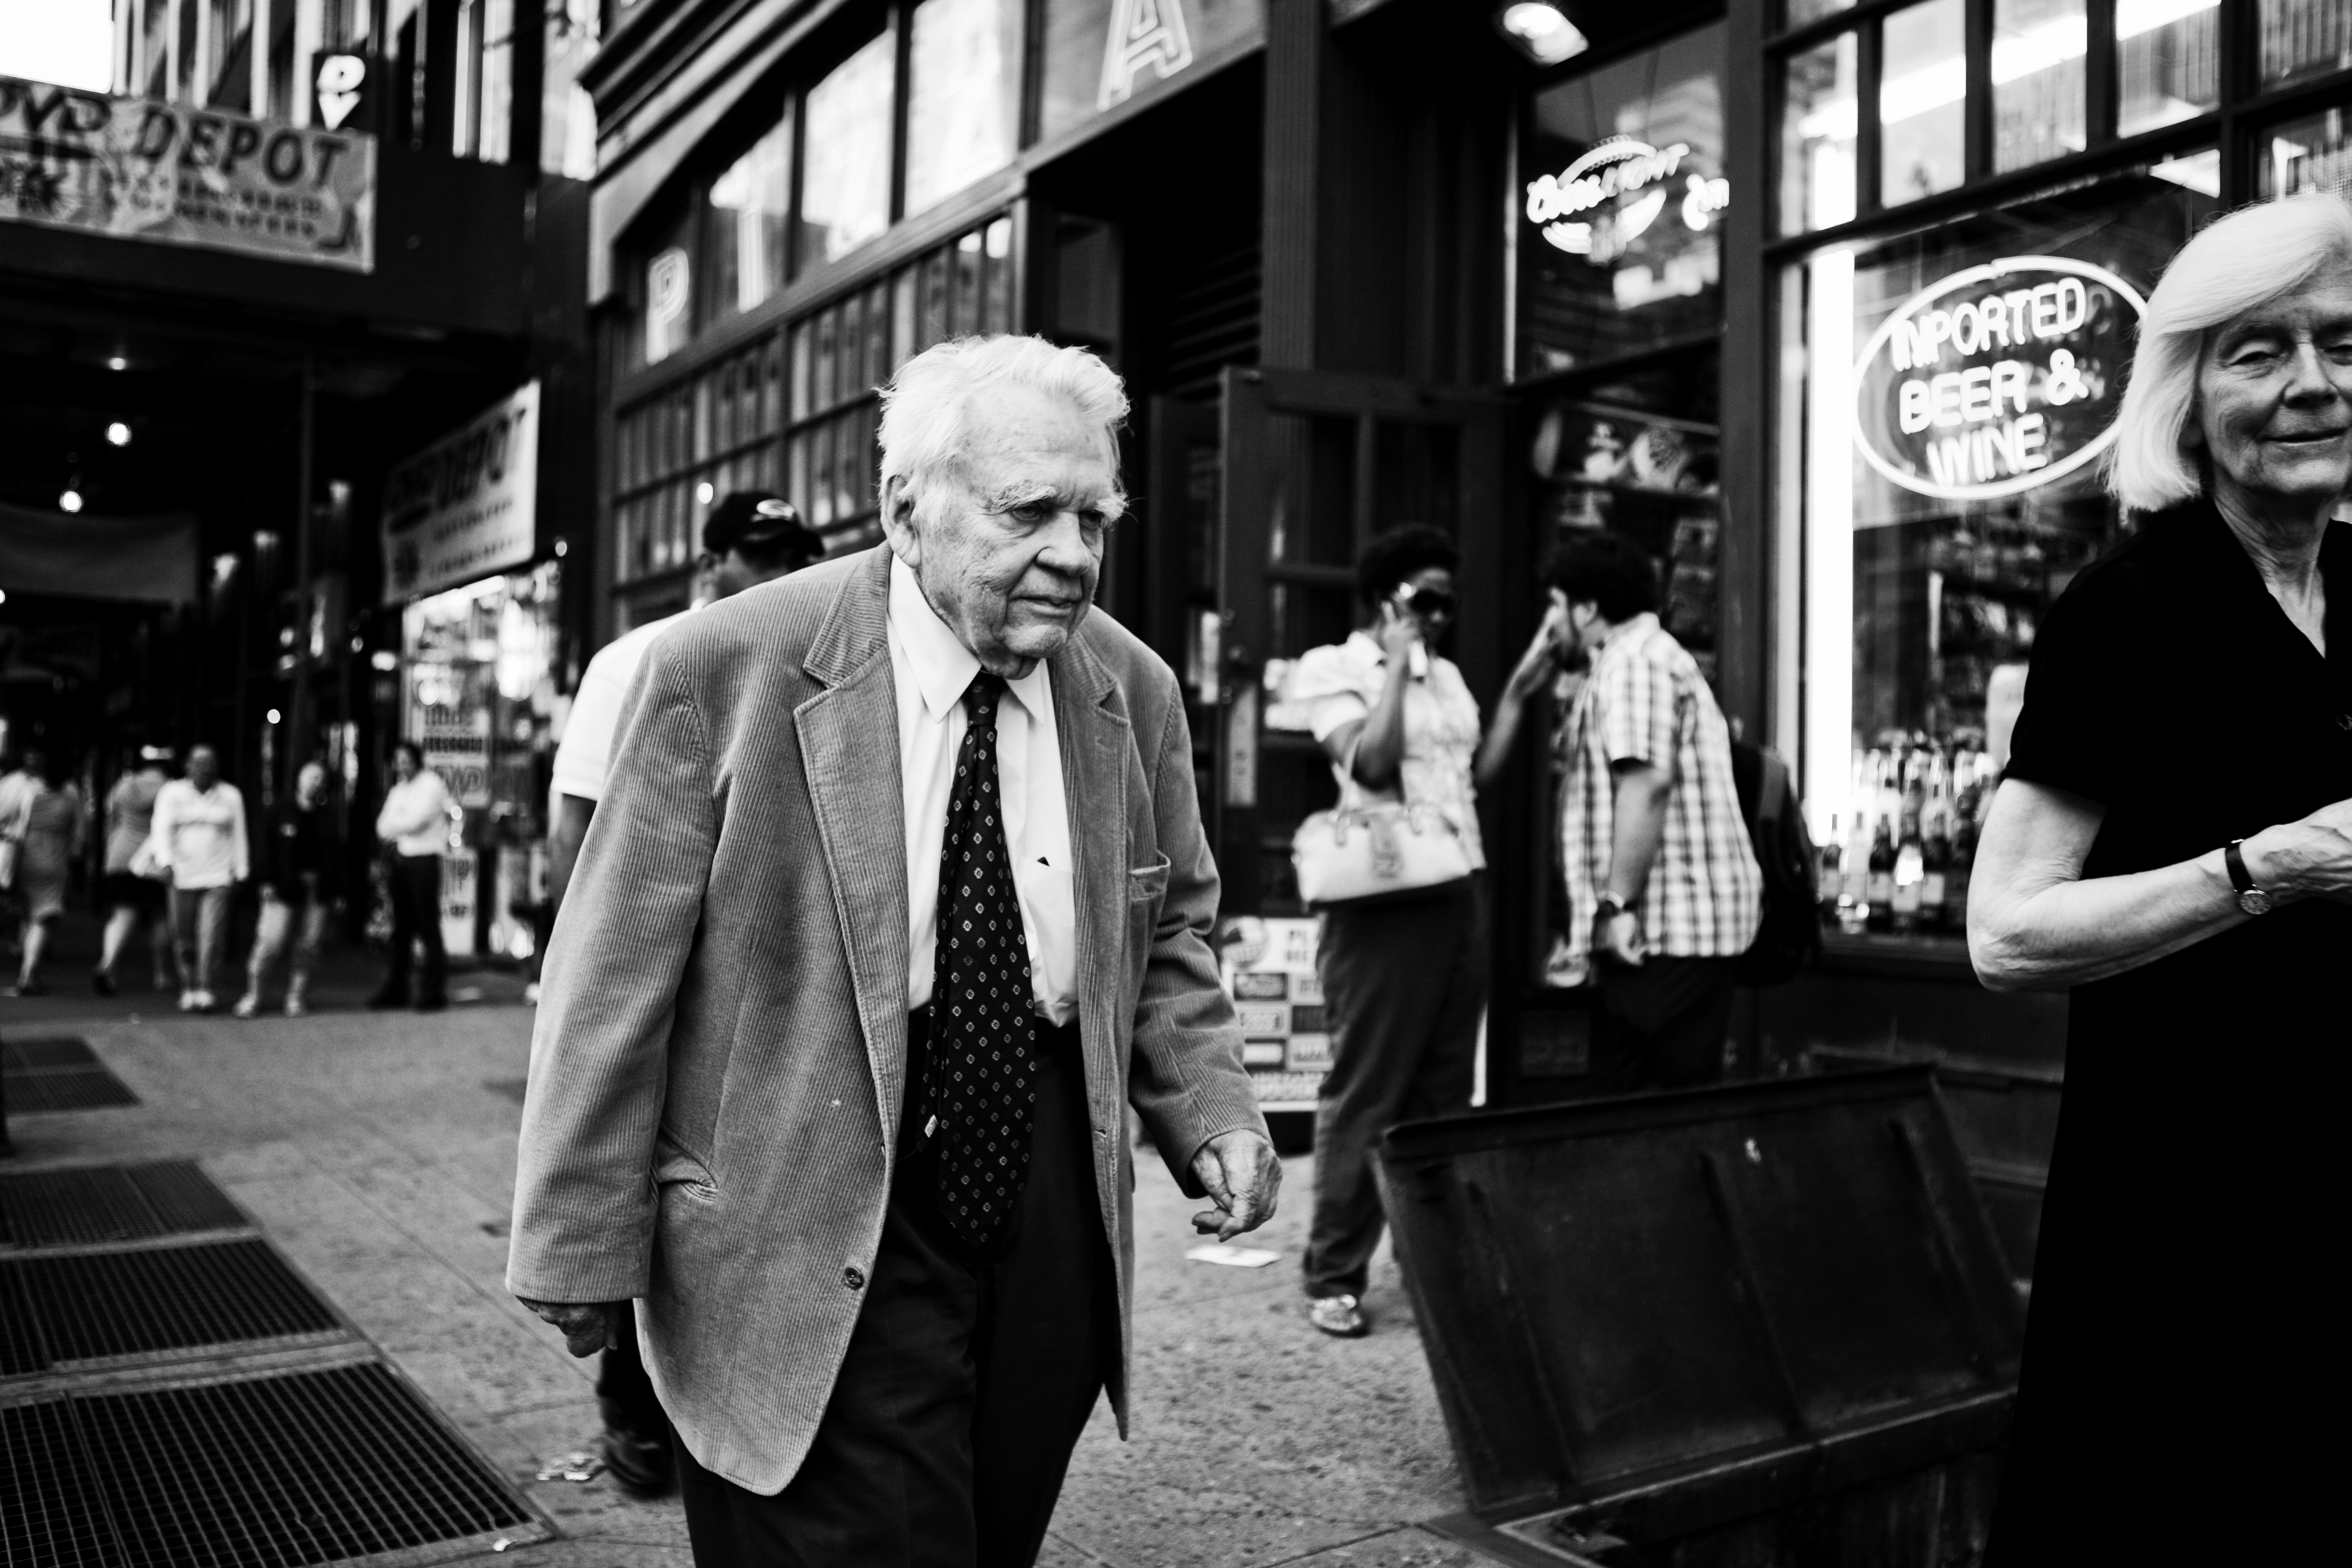 an analysis of in and of ourselves we trust by andy rooney Andy rooney, in and of ourselves we trust wil haygood, underground dads mary karr, dysfunctional nation issues and ideas: characterizing behavior brent staples.